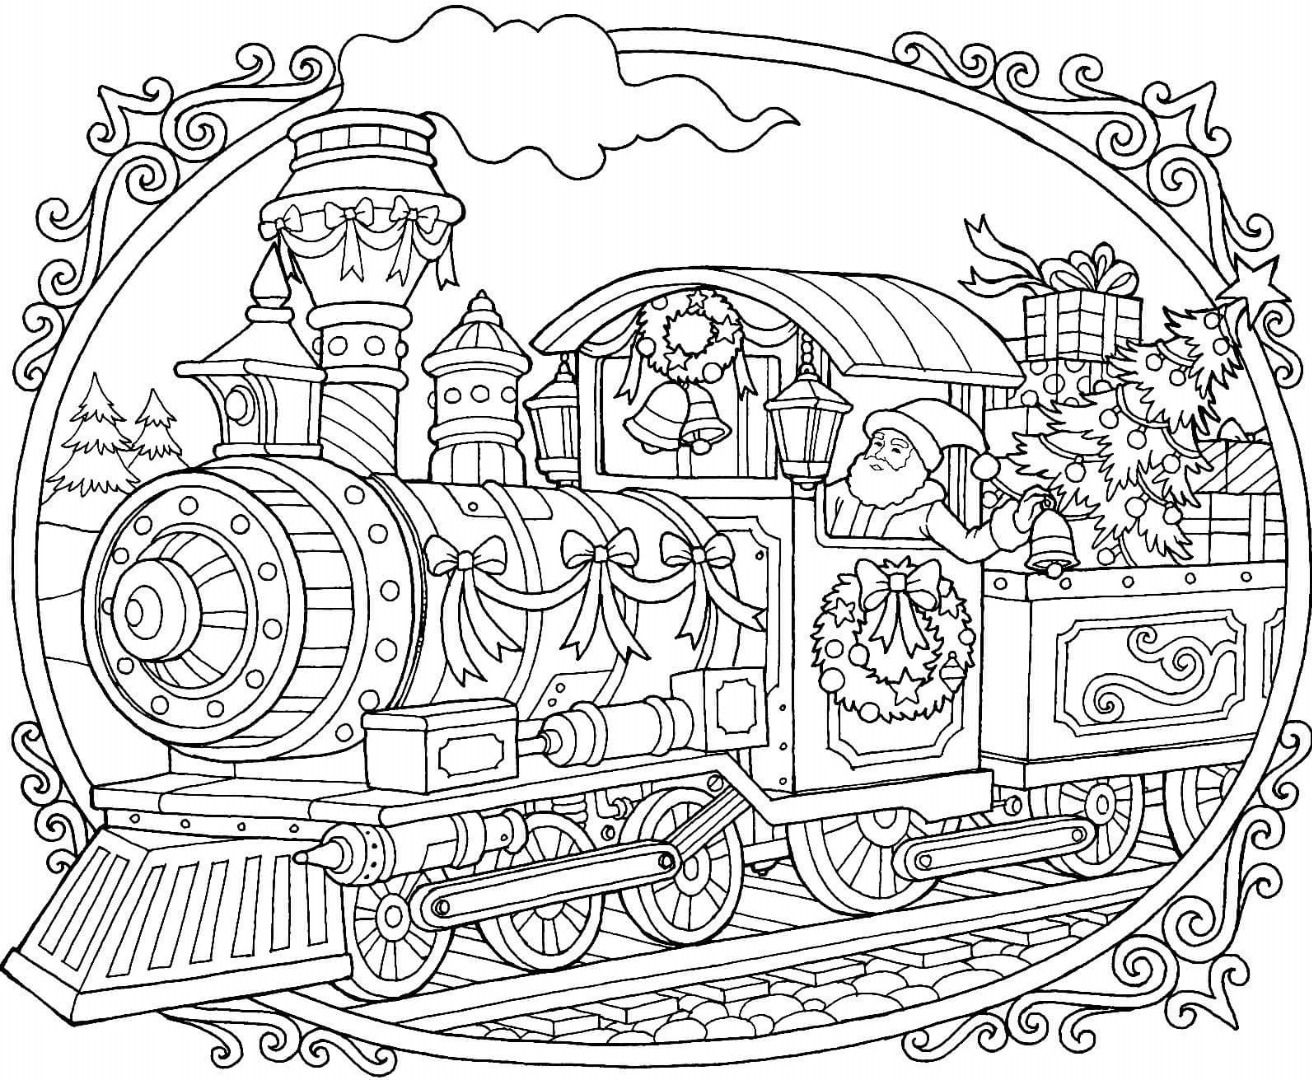 Christmas Train Coloring Page | Coloring Pages Holidays & Seasons ...